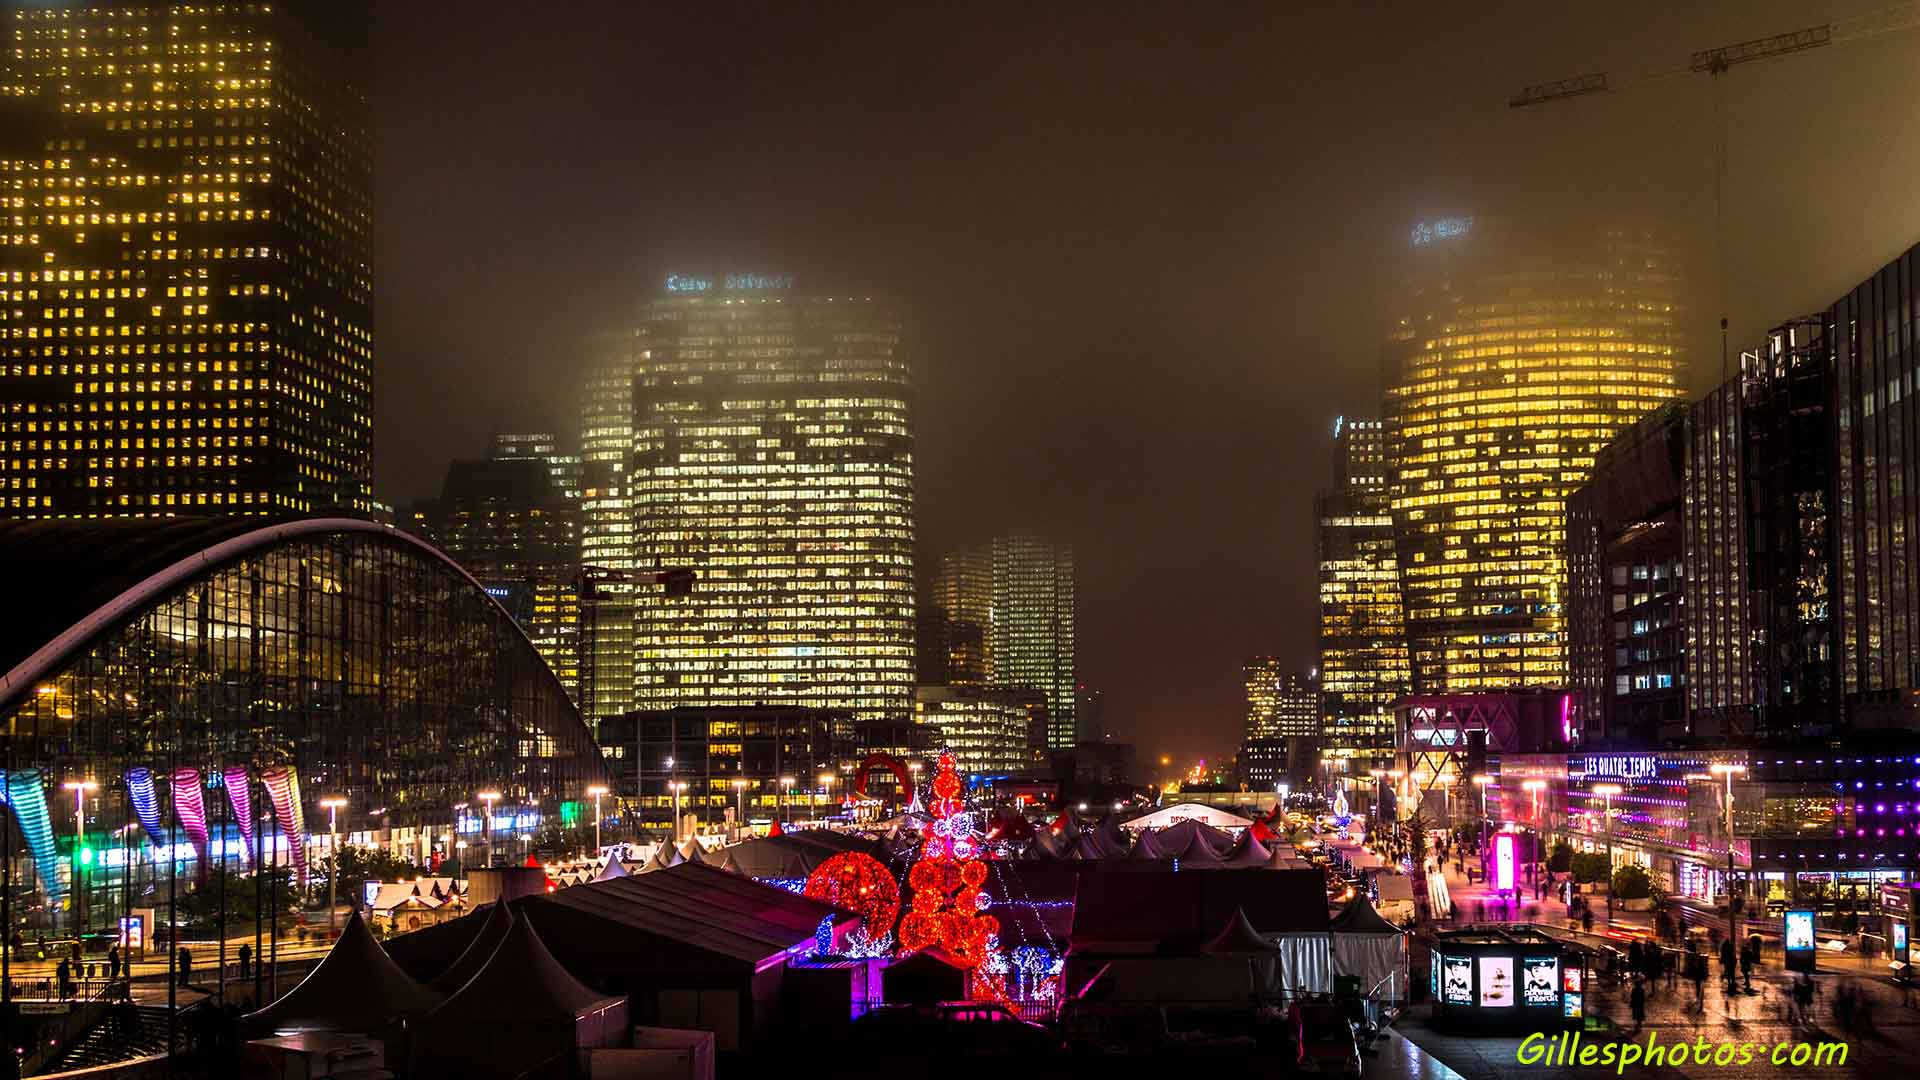 Marche de Noel -la defense